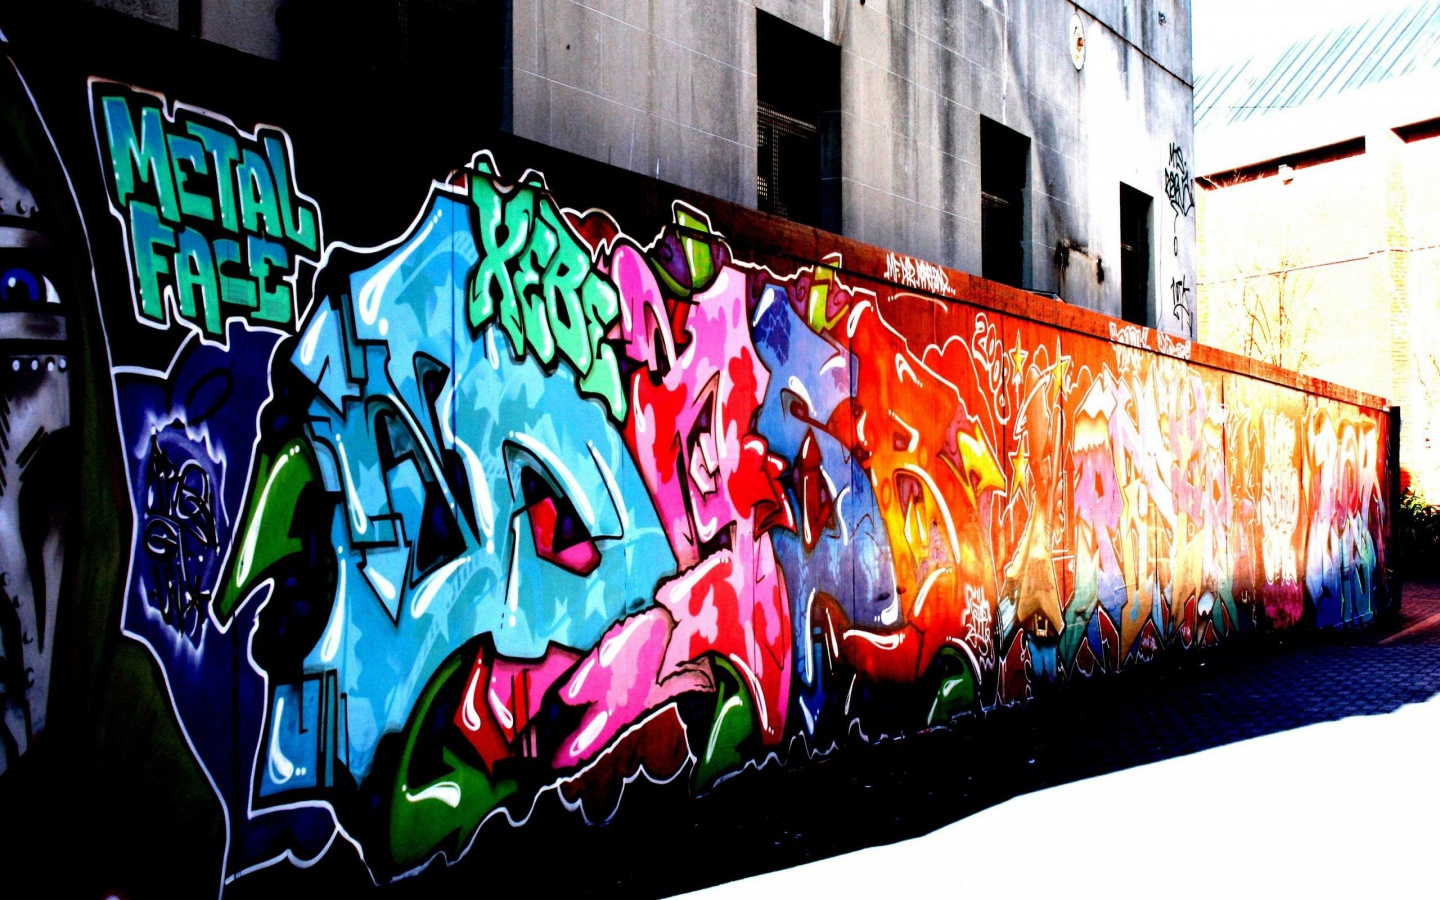 Wall Graffiti   Colors Wallpaper 31067200 1440x900